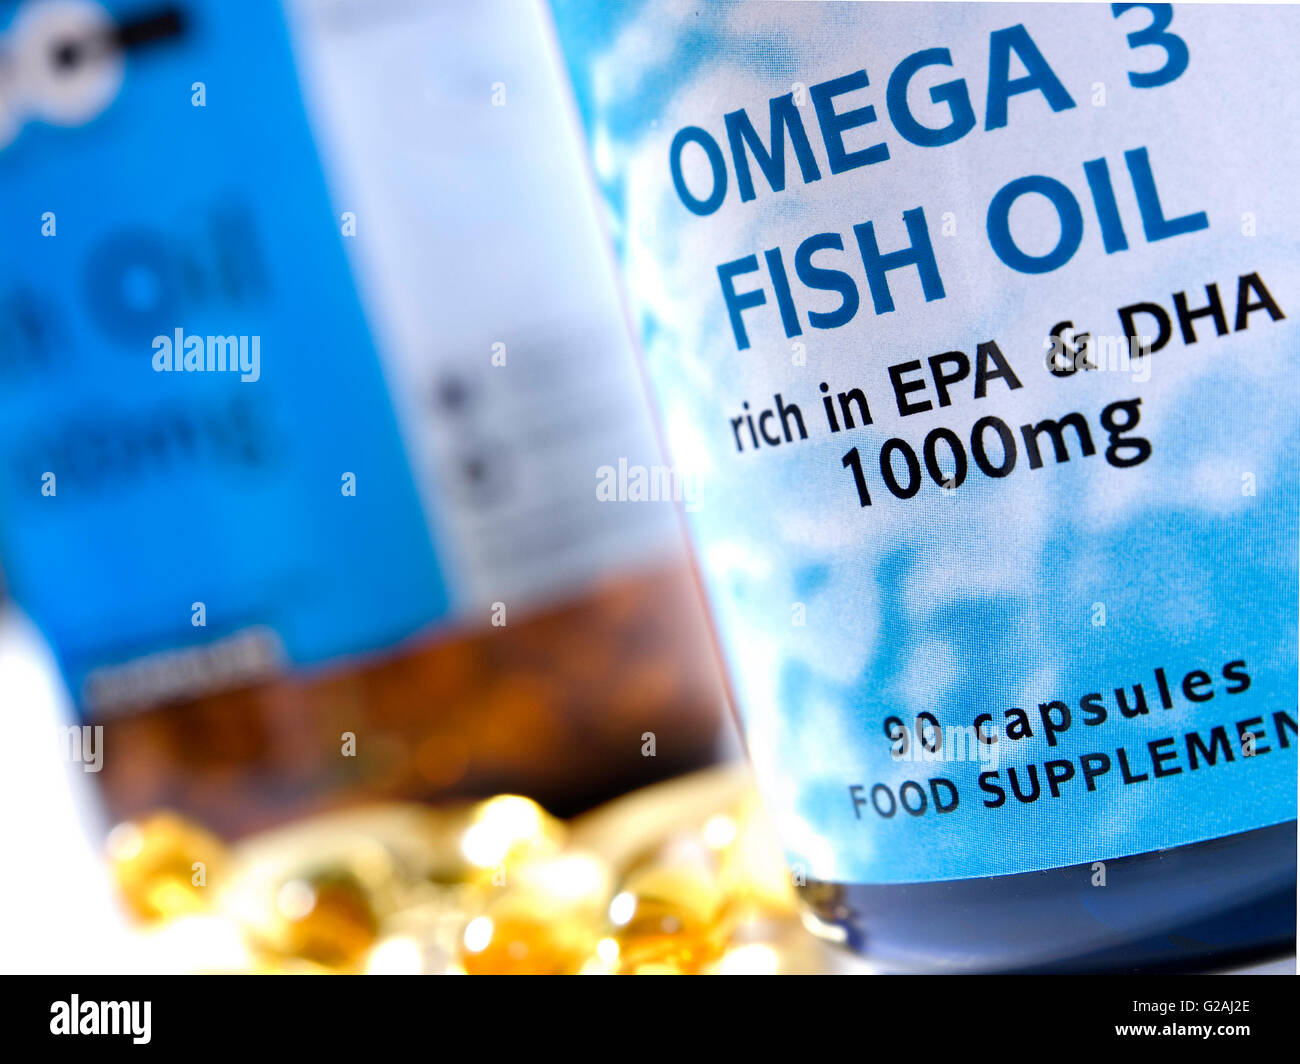 Omega 3 fish oil protein eich in EPA & DHA 1000mg capsules in a studio setting - Stock Image